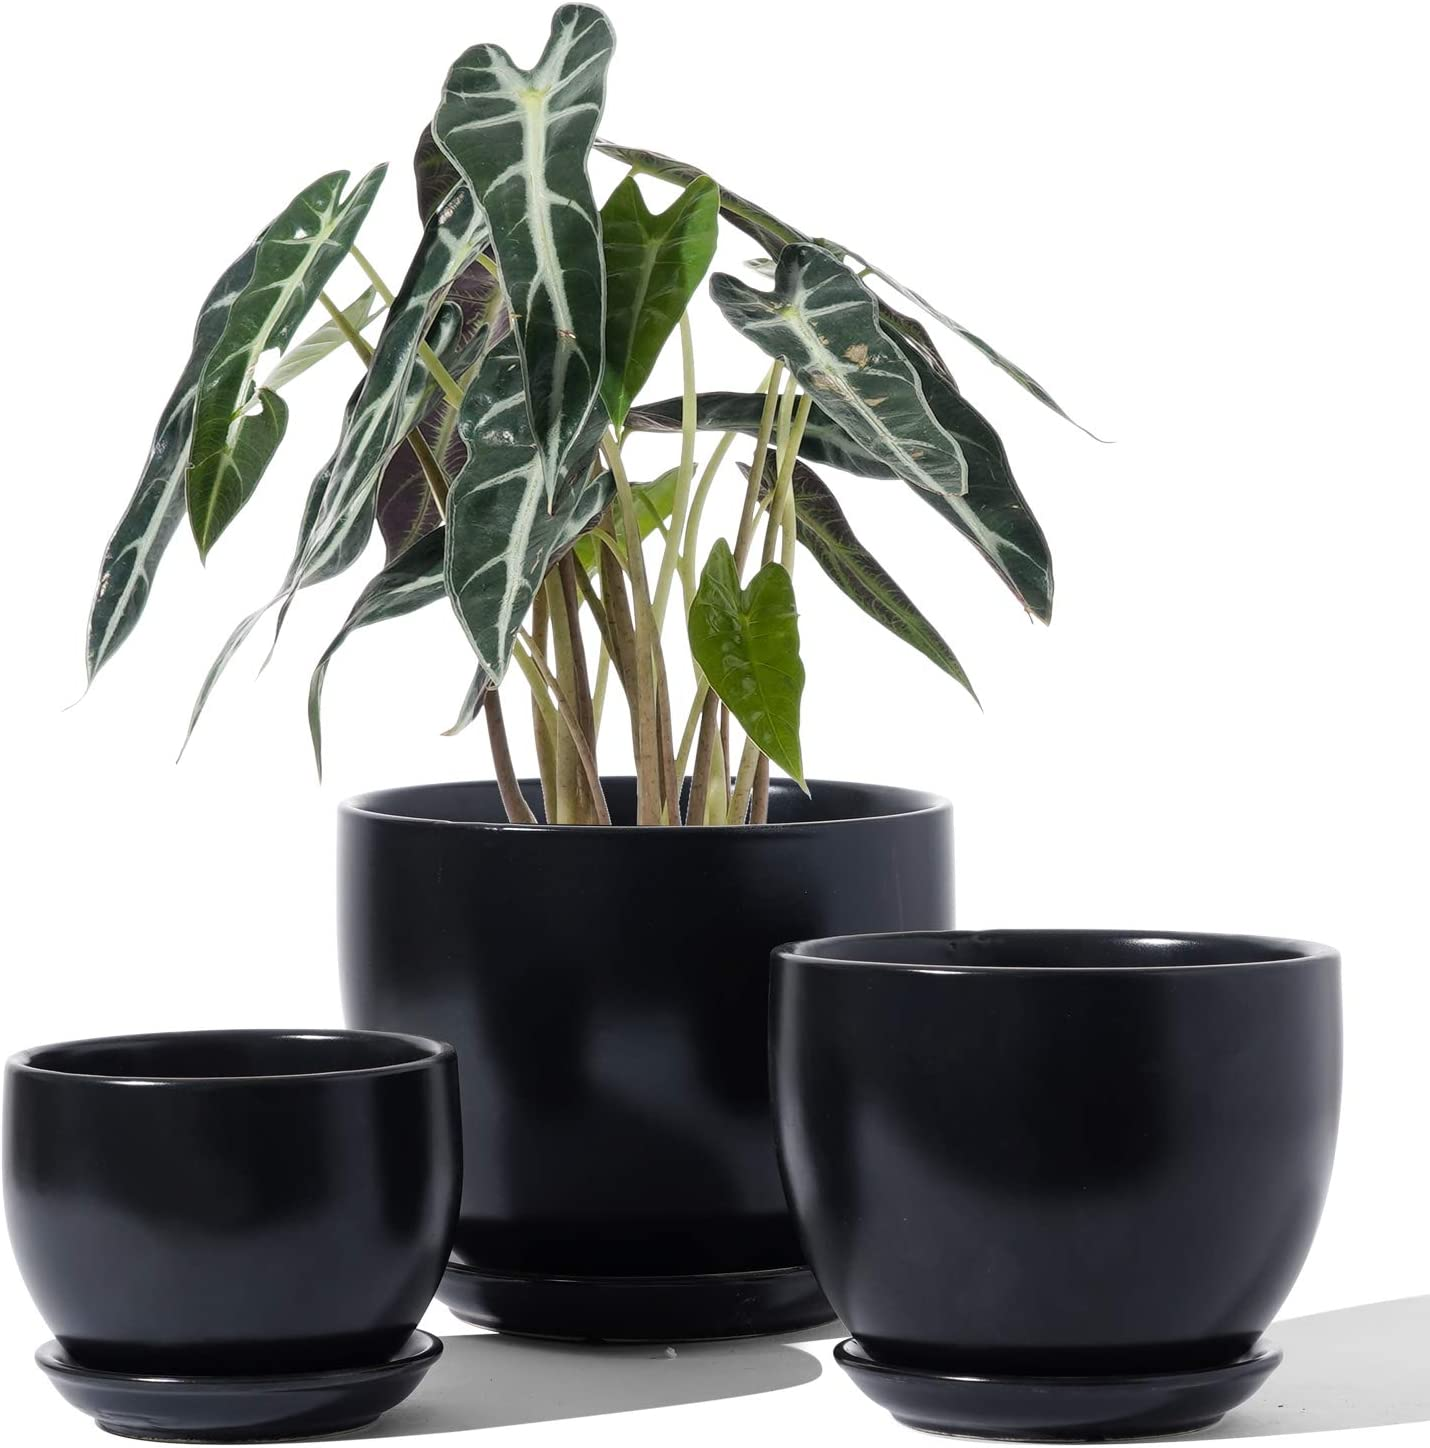 LE TAUCI Indoor Plant Pot, 6.3+5.3+4.3 Inch Ceramic Planter Pots with Drainage Hole and Saucer, Small to Large Sized, Flower Pot for Indoor Garden Decor, Set of 3, Black (Plants not Included)